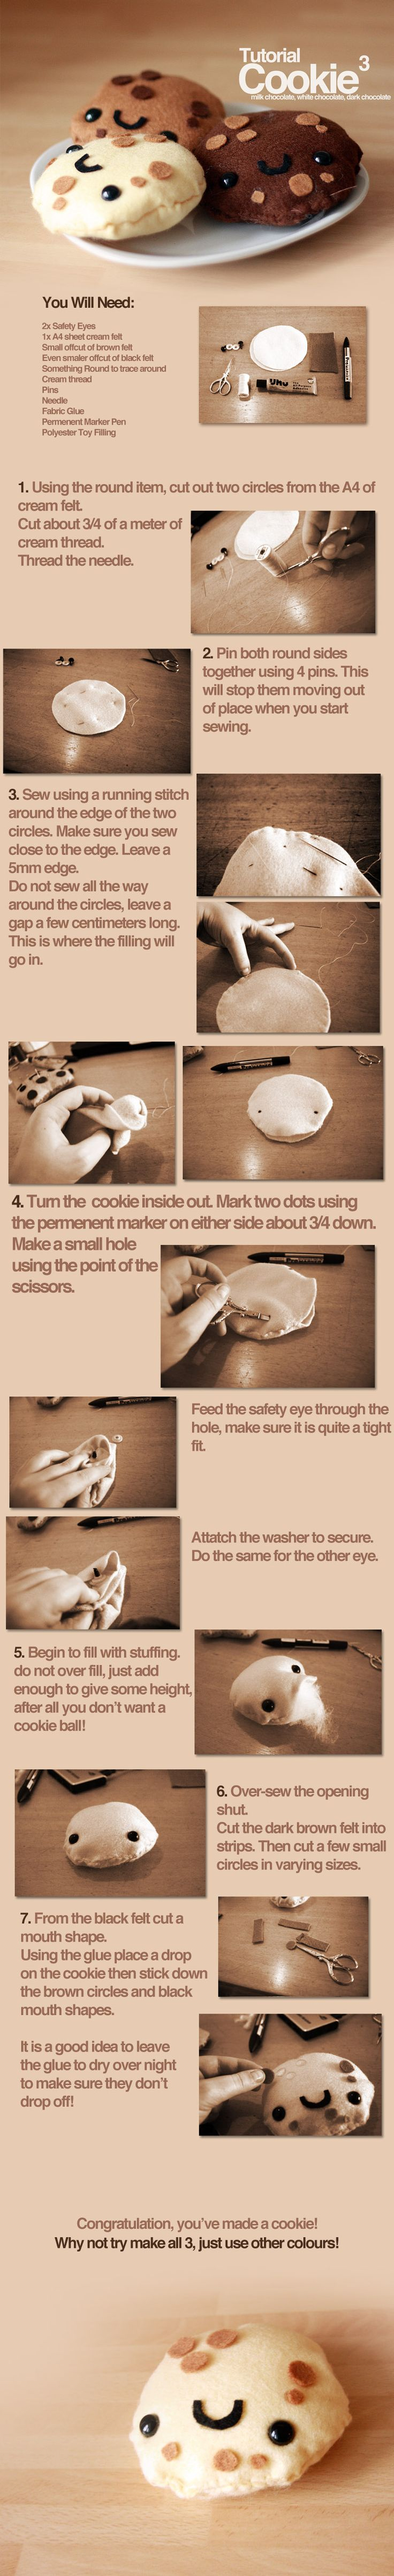 .:cookie plushie tutorial:. by For-Certain.deviantart.com on @deviantART